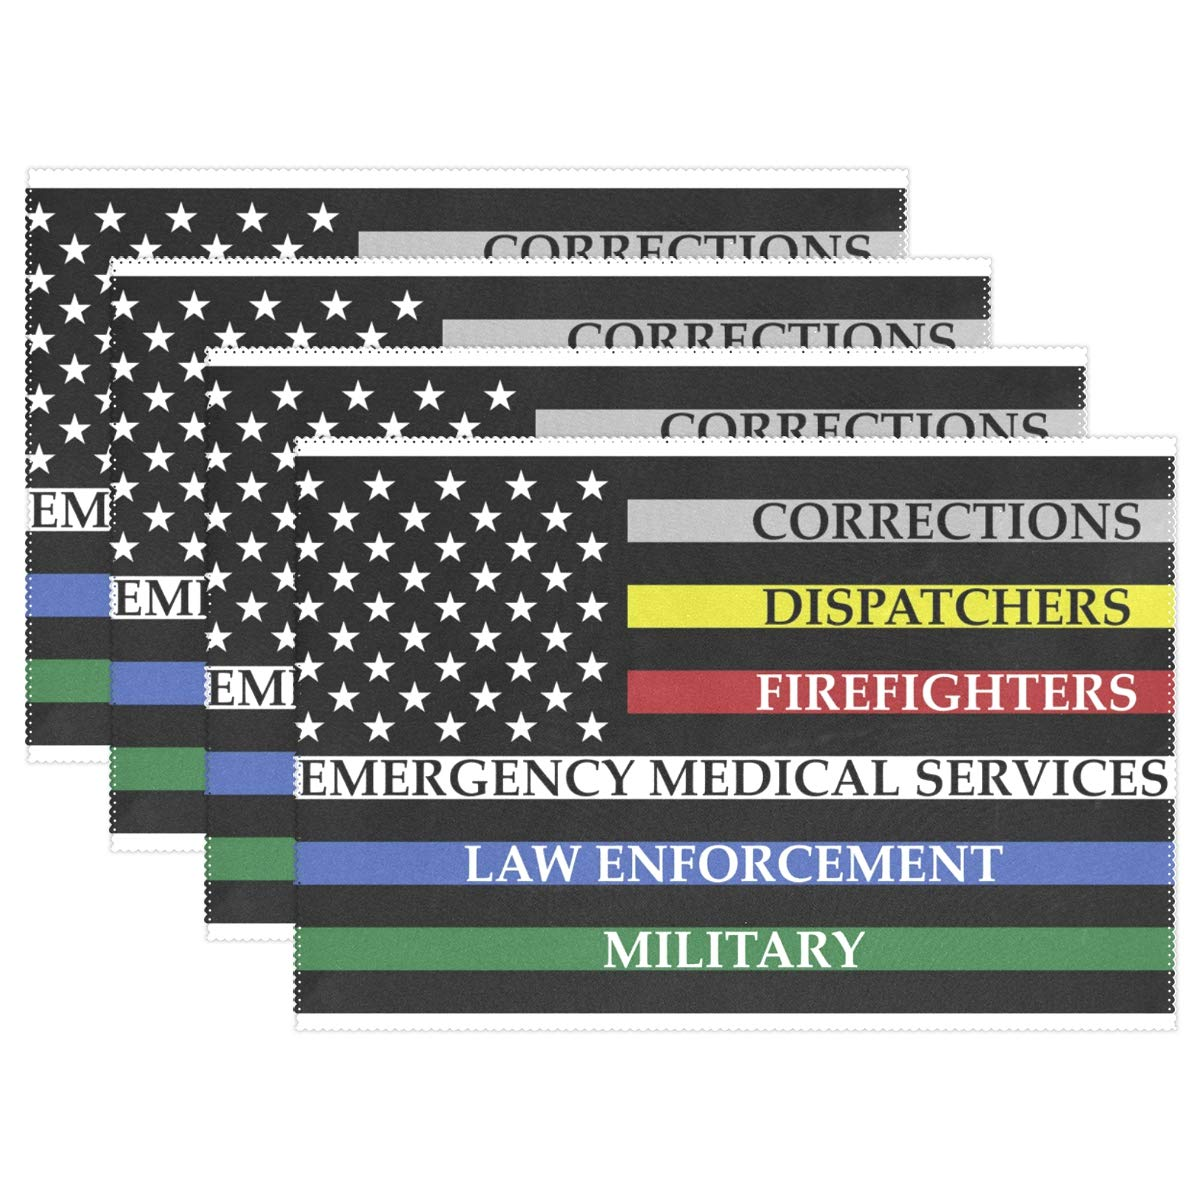 America Flag with Colored Lines Placemats Set of 6 for Kitchen Table Heat Resistant Washable Table Mats